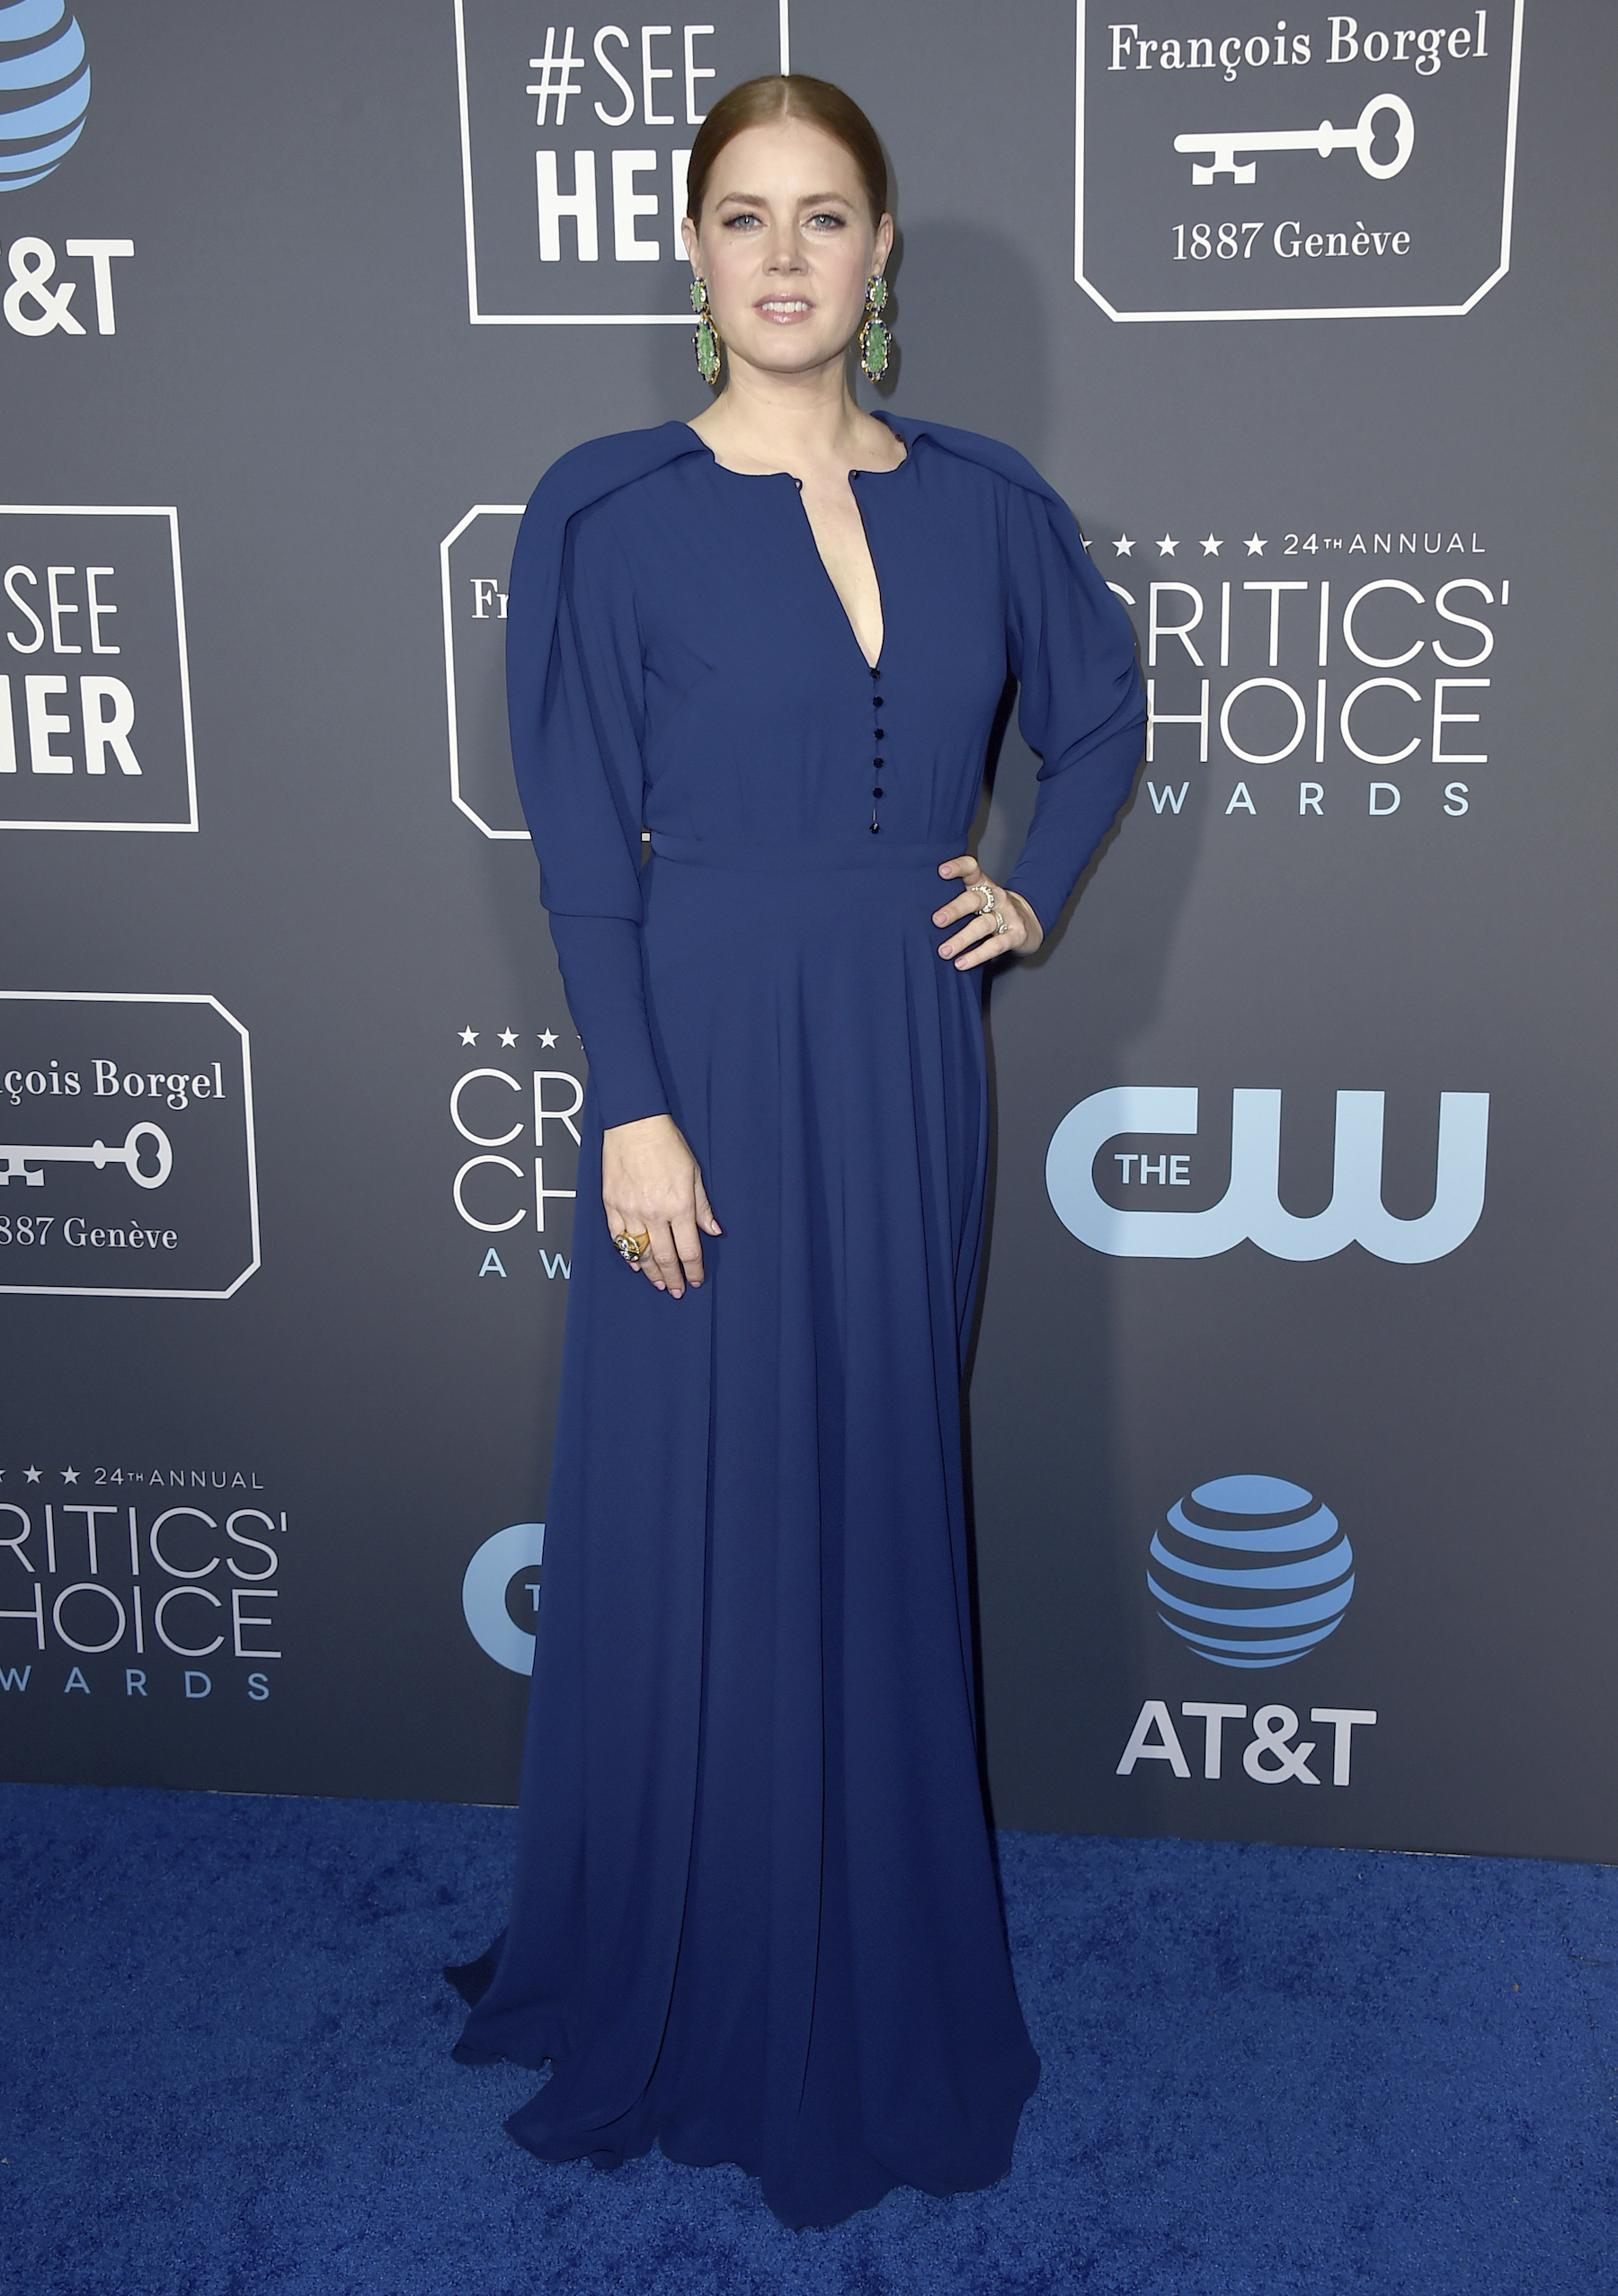 <div class='meta'><div class='origin-logo' data-origin='AP'></div><span class='caption-text' data-credit='Jordan Strauss/Invision/AP'>Amy Adams arrives at the 24th annual Critics' Choice Awards on Sunday, Jan. 13, 2019, at the Barker Hangar in Santa Monica, Calif.</span></div>